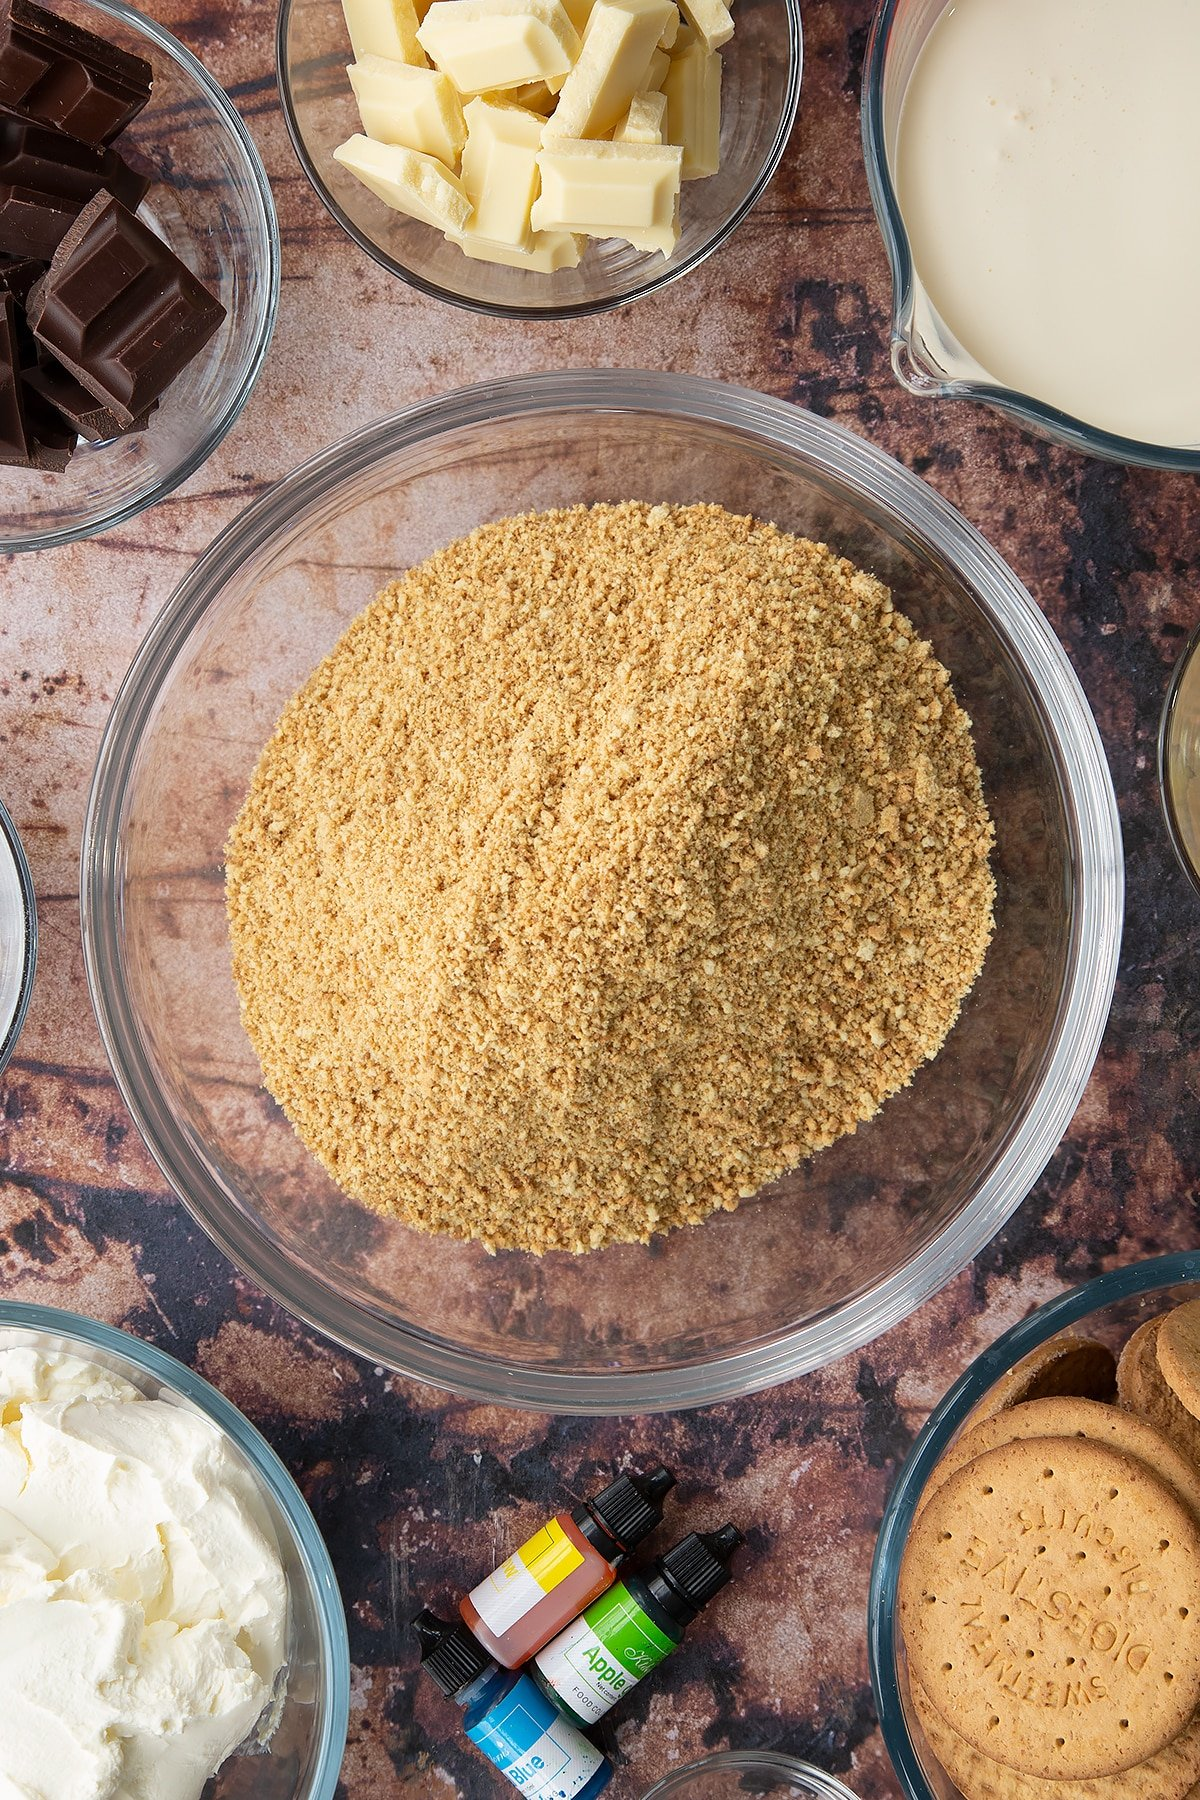 Crushed biscuits in a glass bowl. Ingredients to make no bake mint cheesecake surround the bowl.